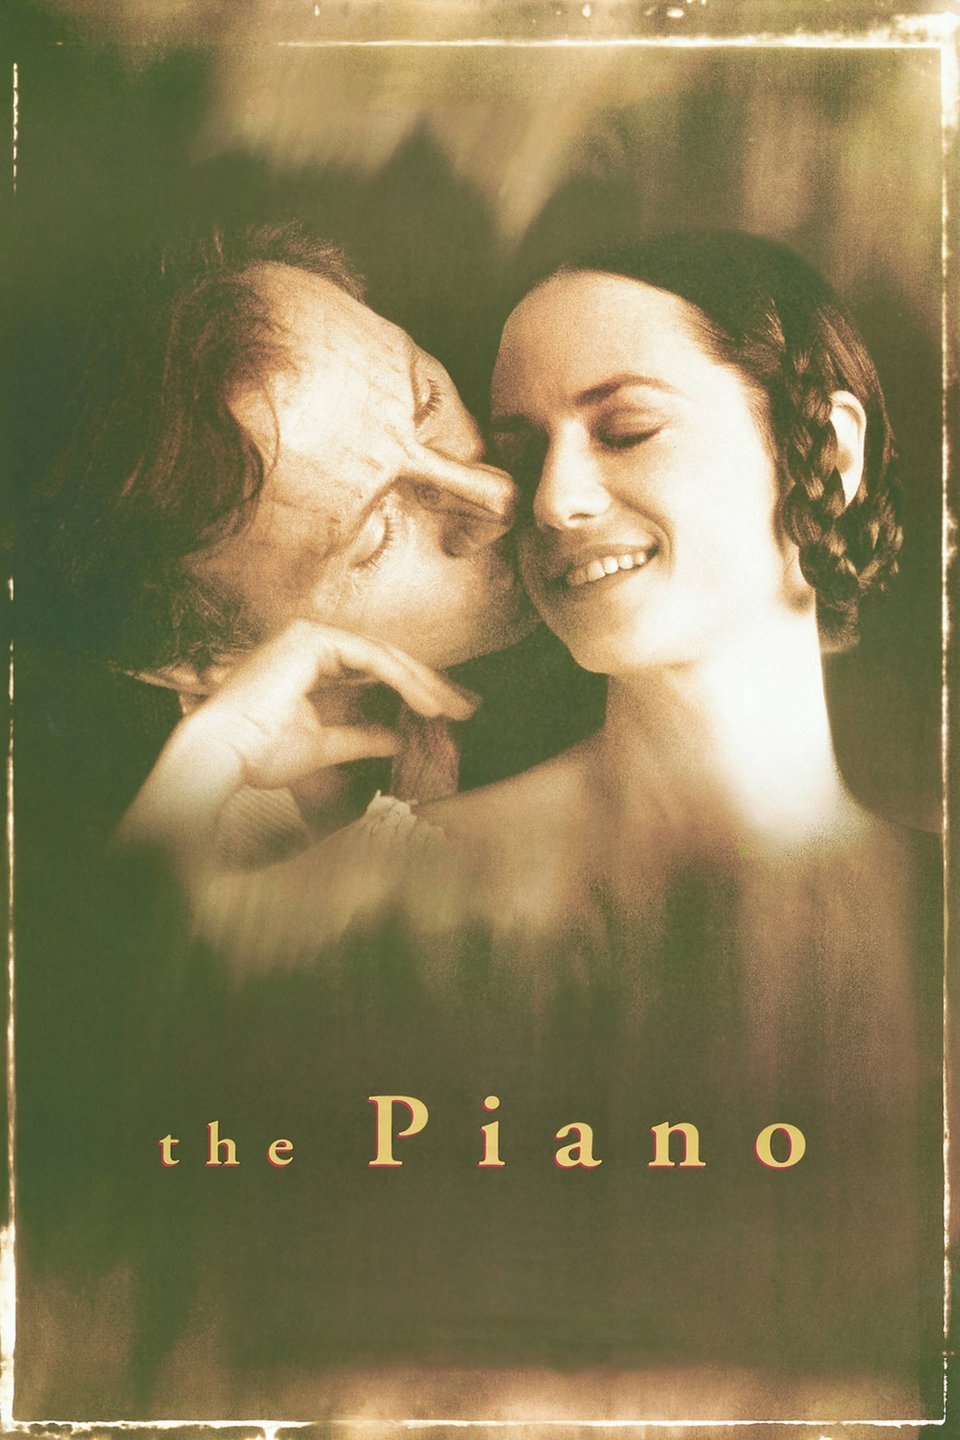 The Piano Poster.jpg